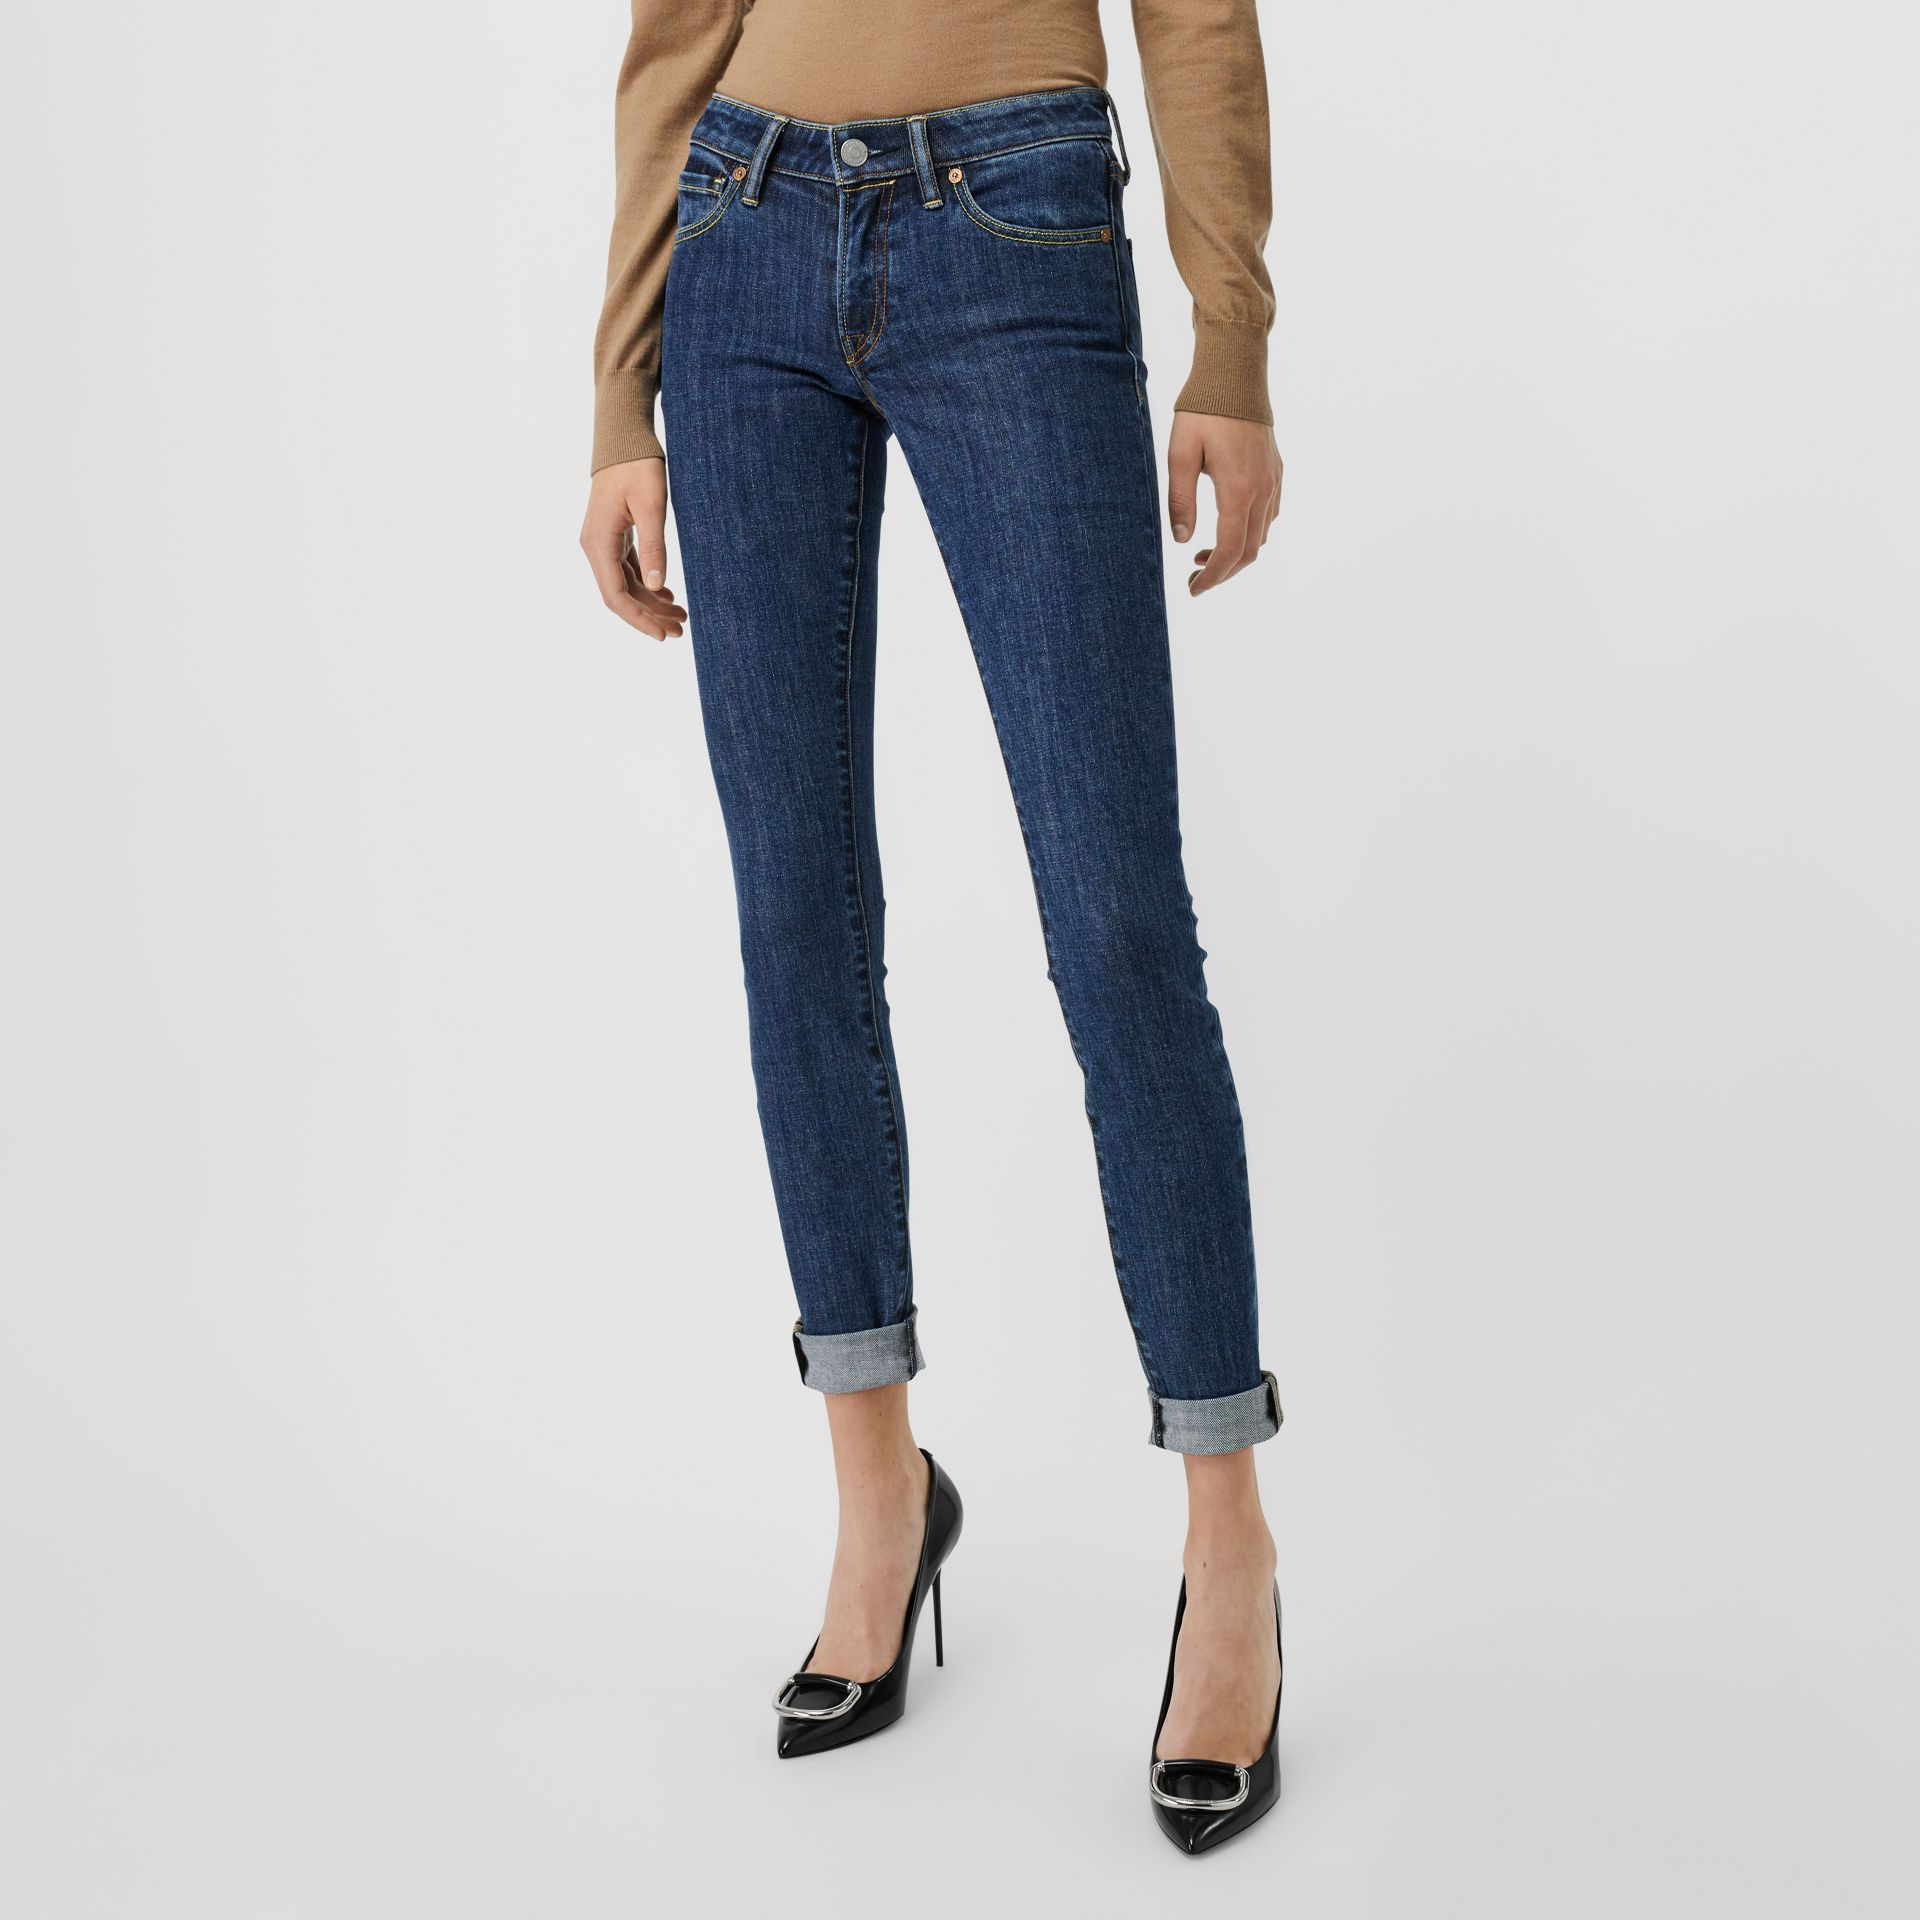 Skinny Fit Japanese Denim Jeans in Blue - Women | Burberry - gallery image 4